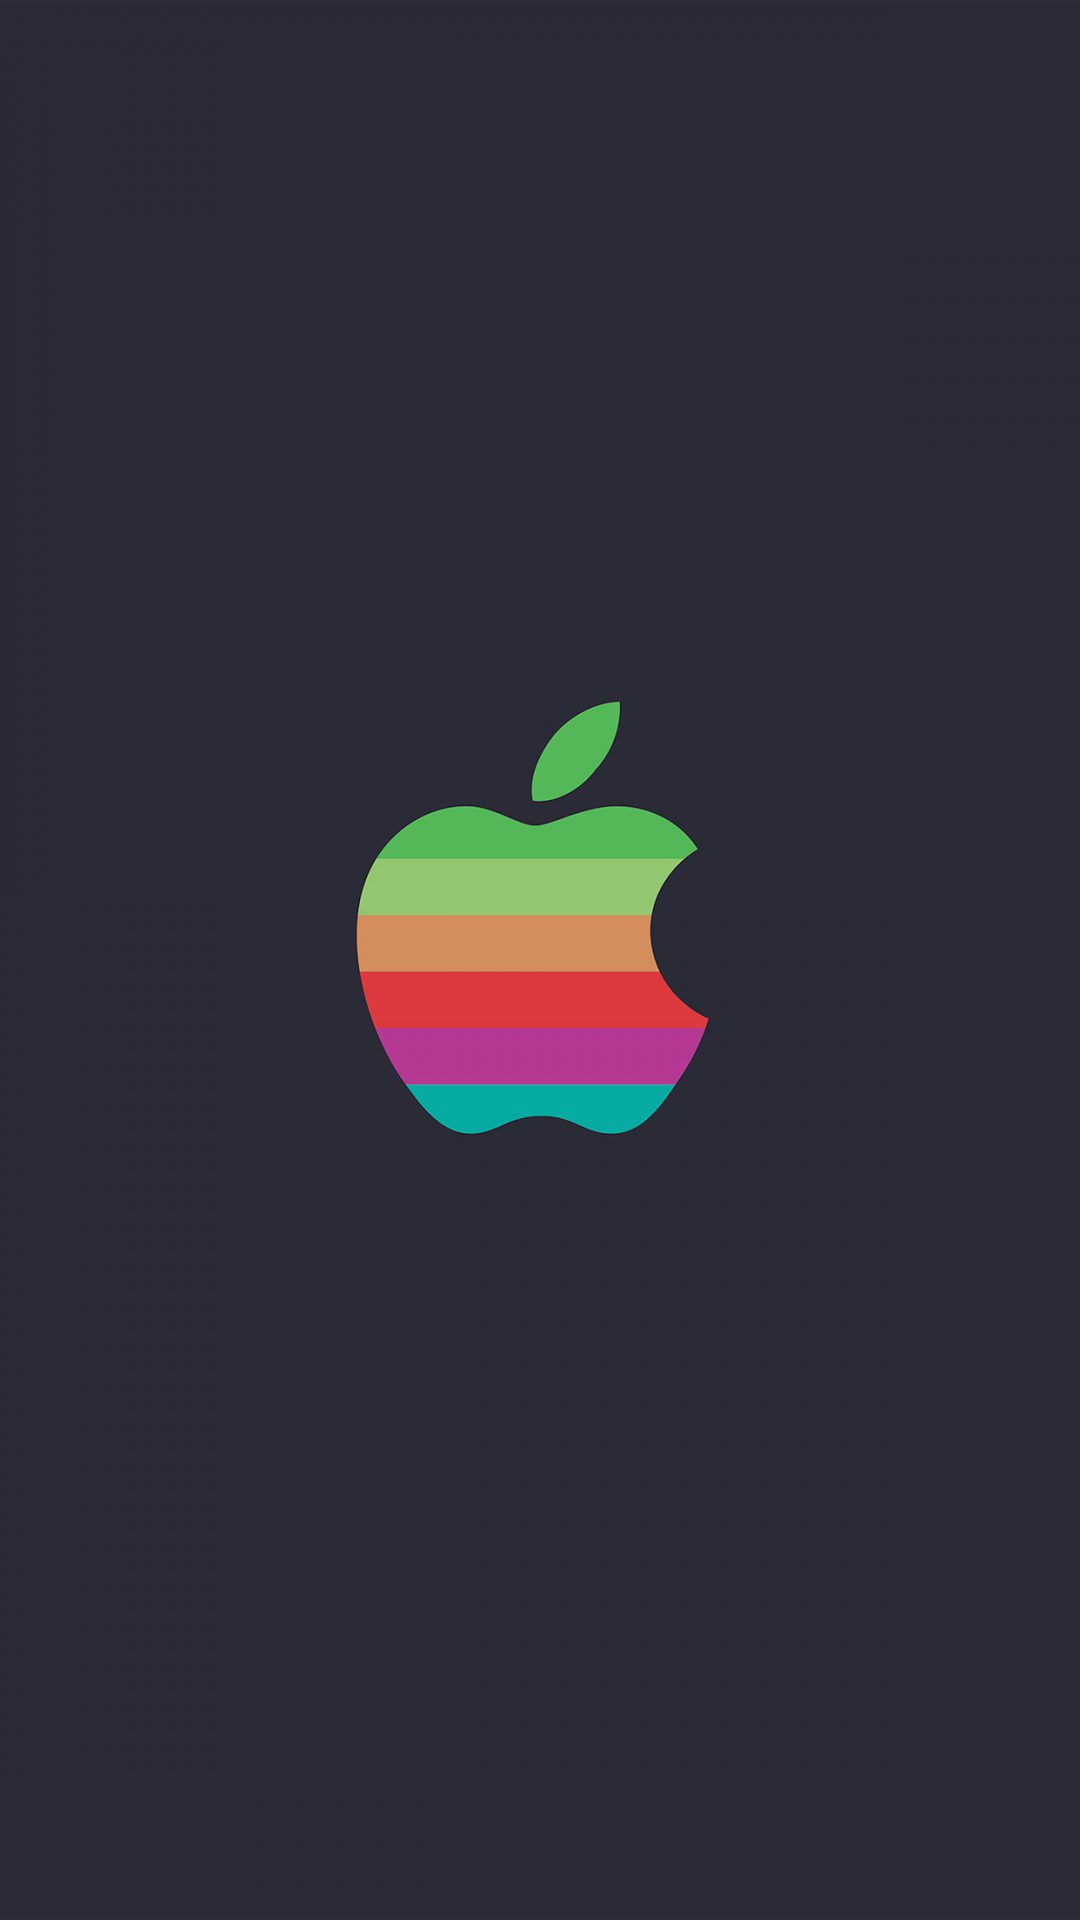 Minimal Logo Apple Color Dark Illustration Art